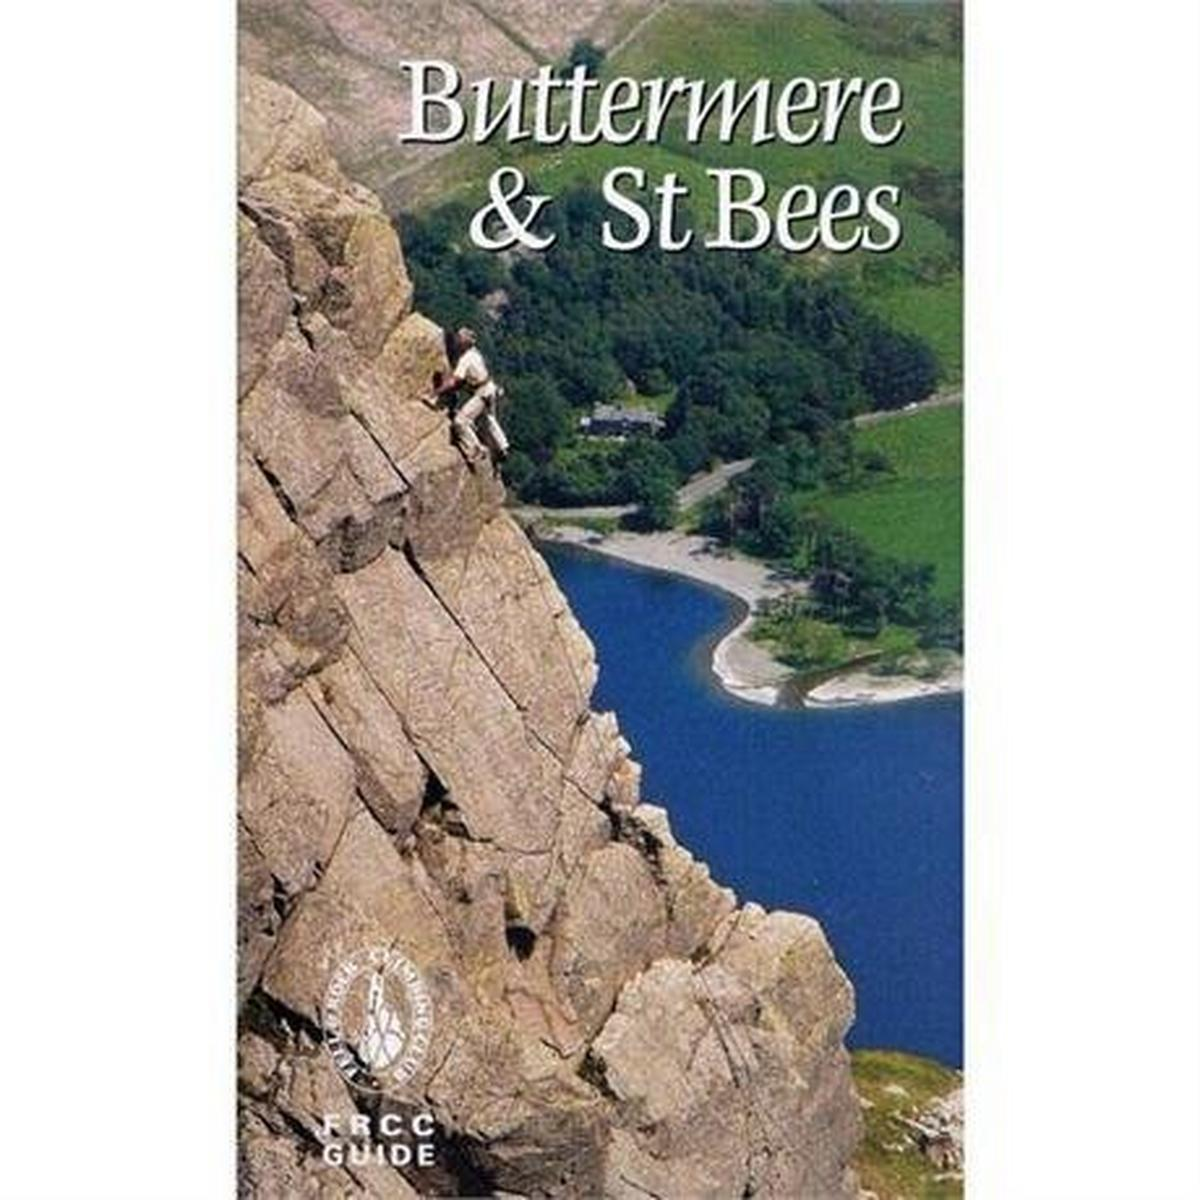 Frcc Guide Books FRCC Climbing Guide Book: Buttermere & St Bees